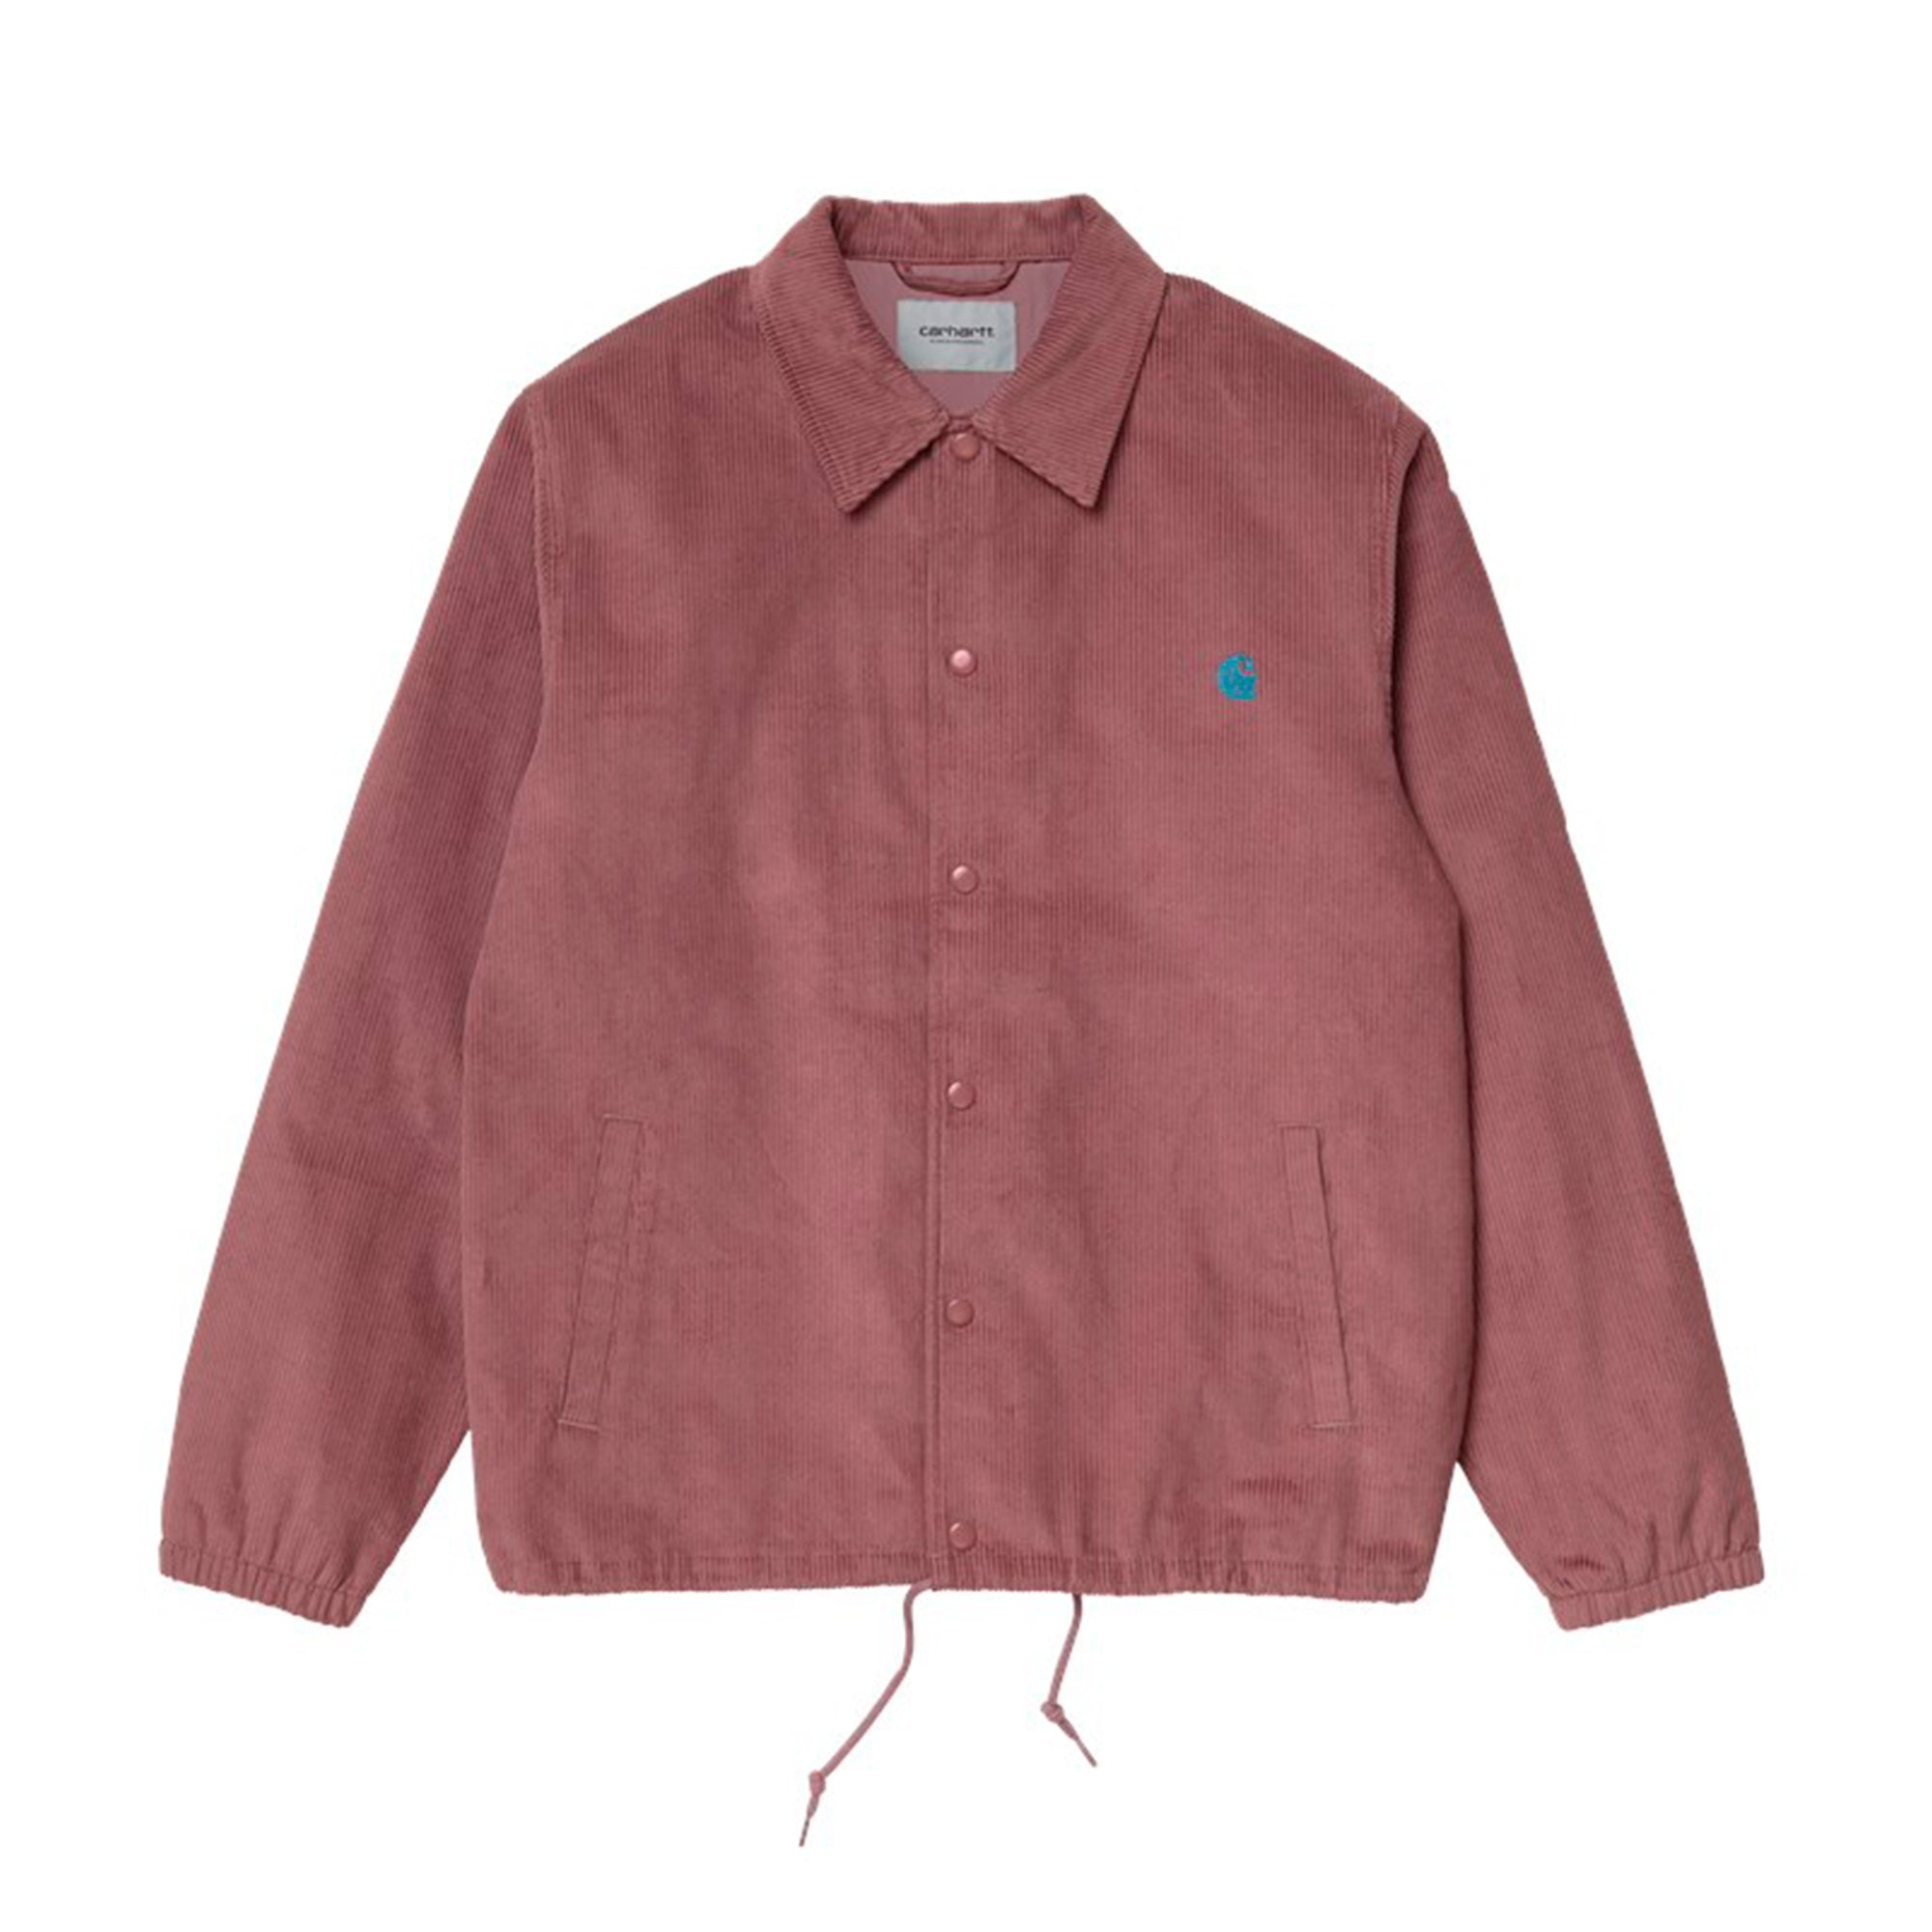 Carhartt WIP Corduroy Coach Jacket: Malaga / Corse - The Union Project